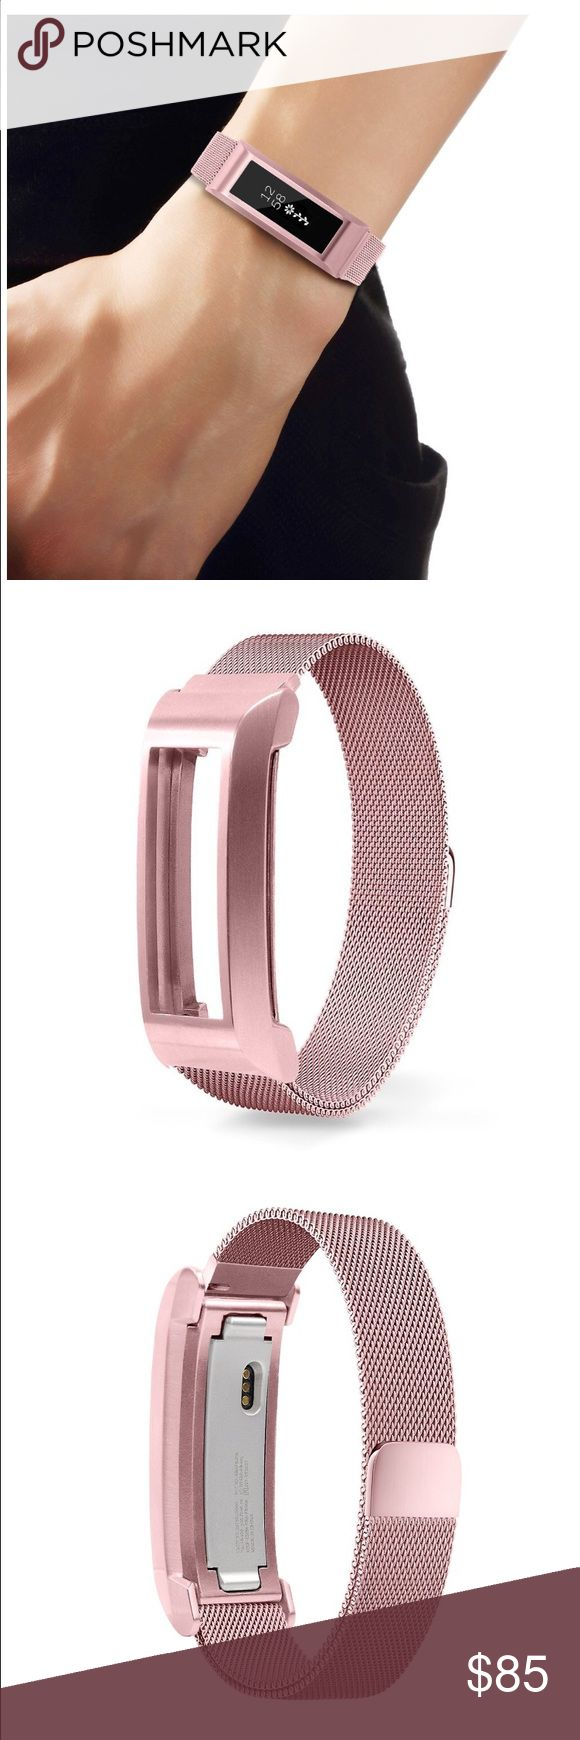 Fitbit Alta Pink Mesh Band. Fitbit Alta Pink Mesh Band. Magnetic closure clasp. Never used. Brand new in box! Accessories